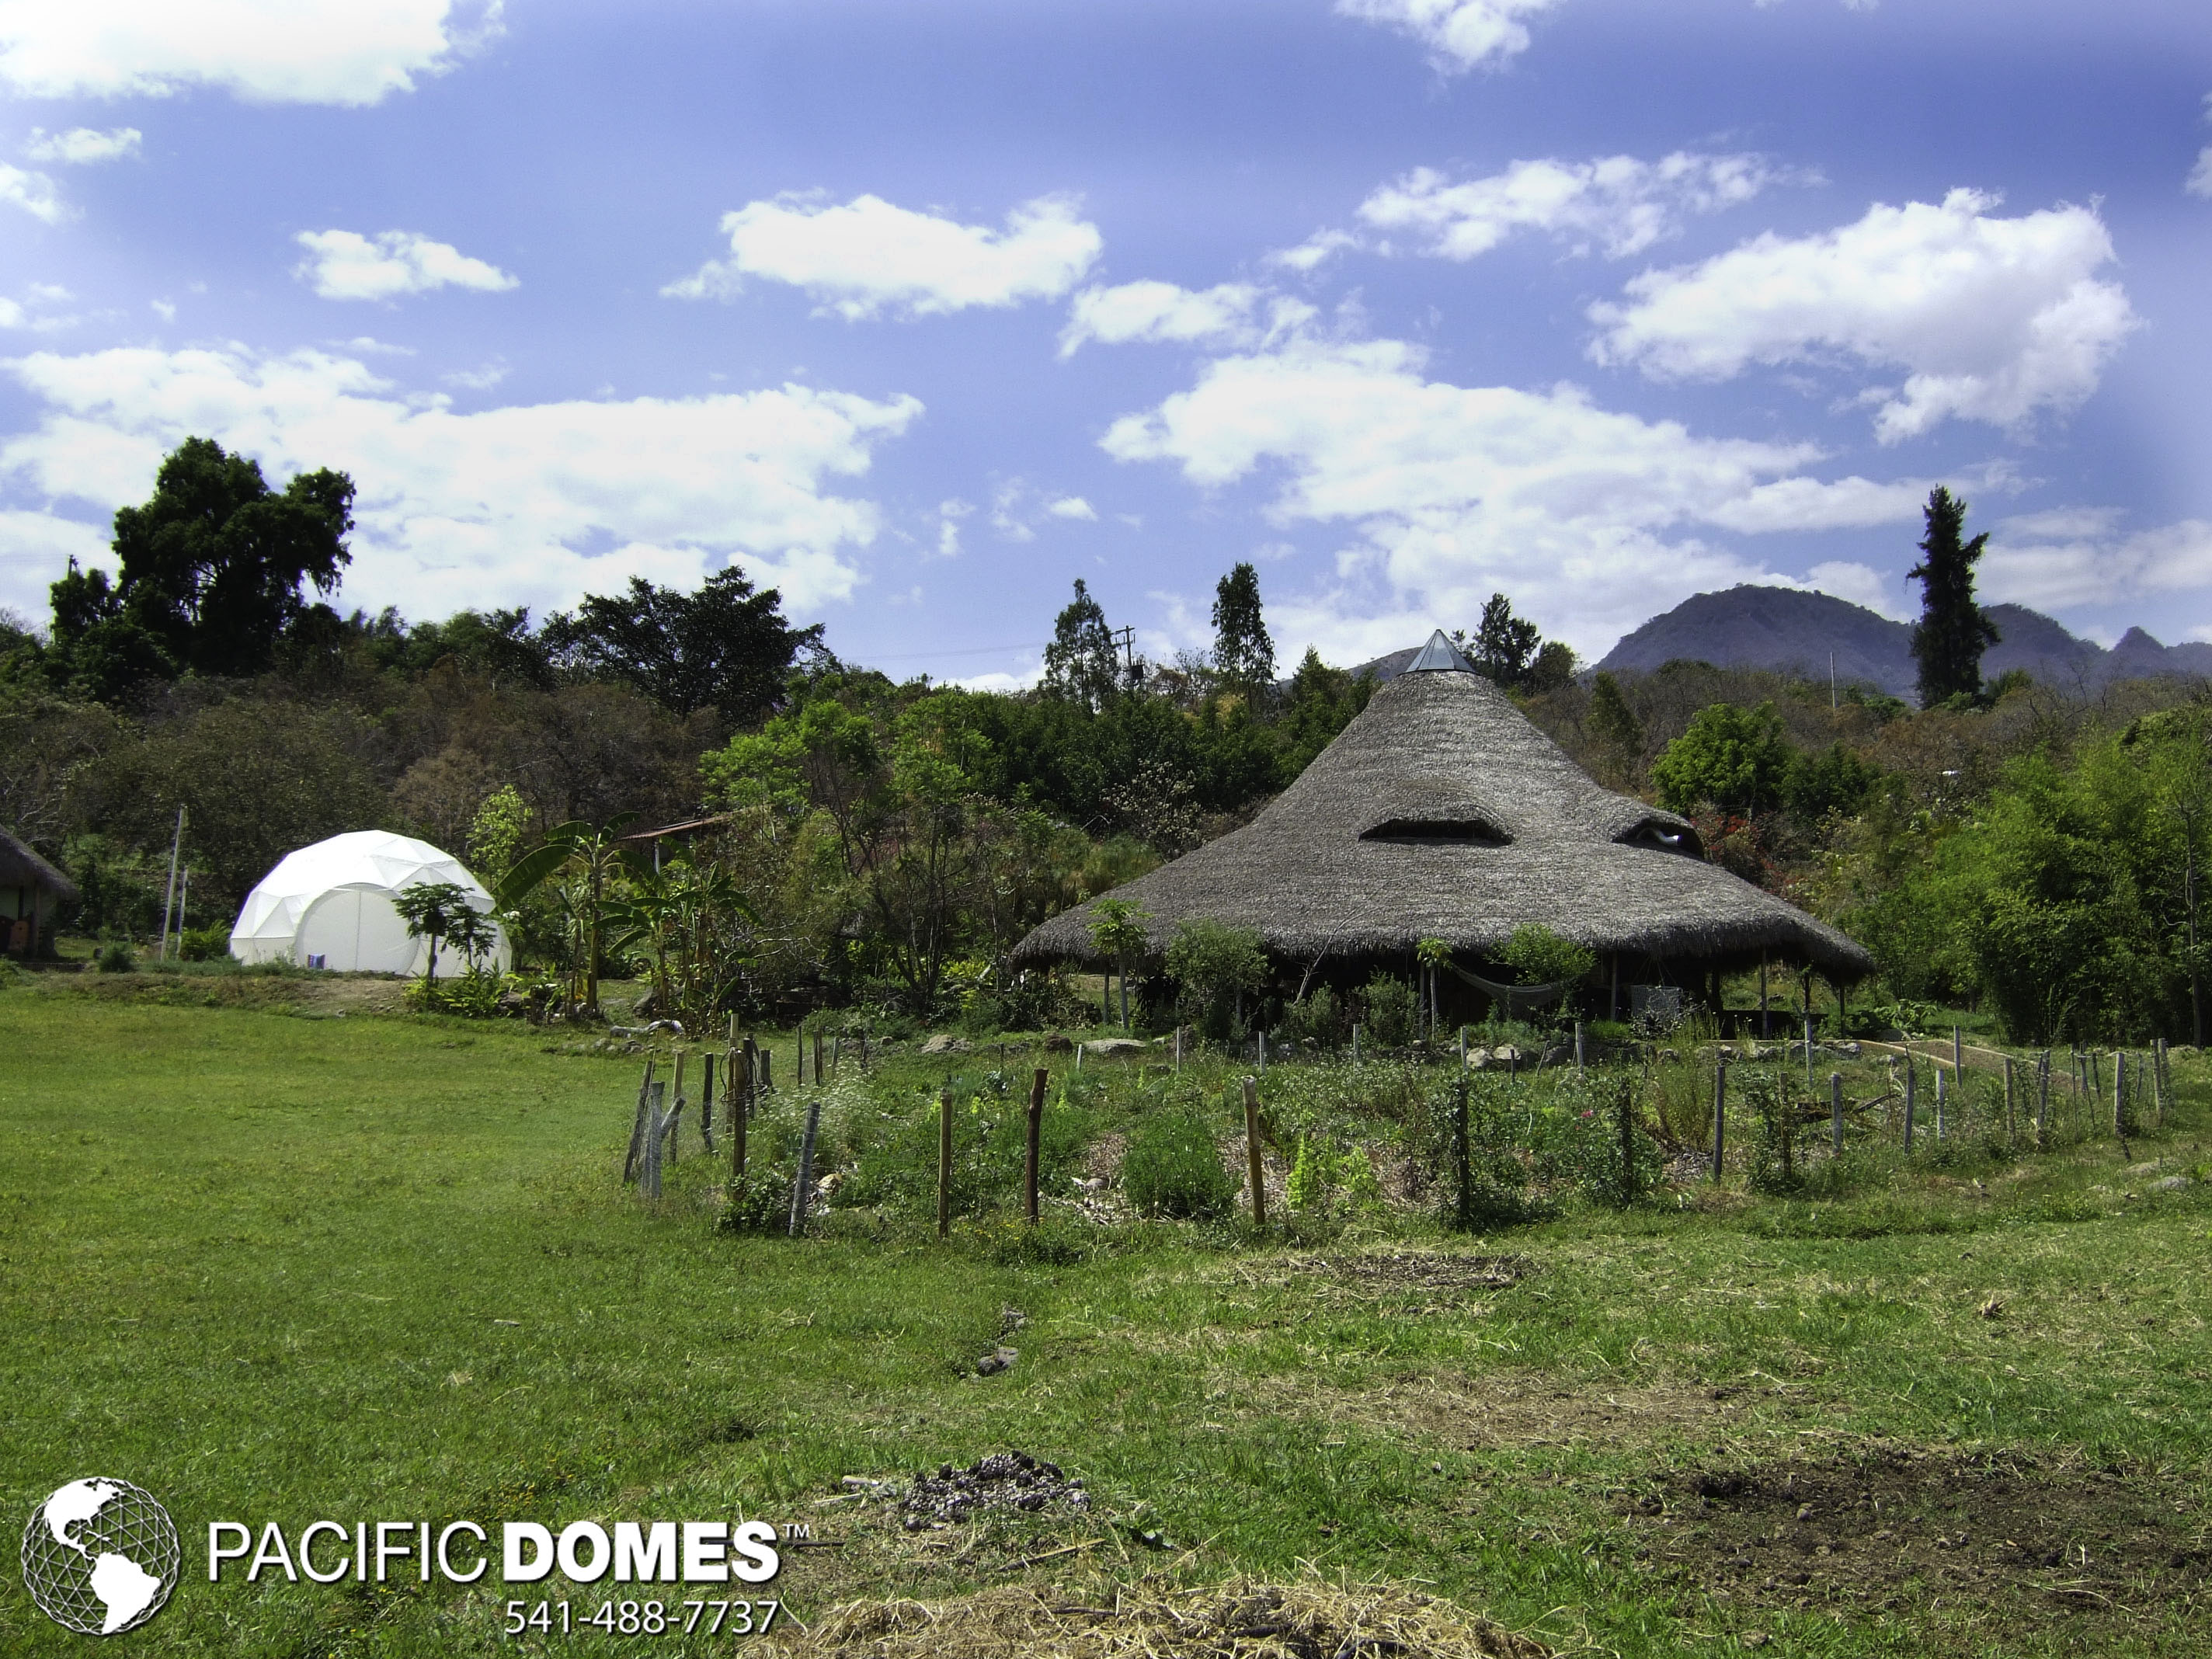 mexico, domes, glamping, resort